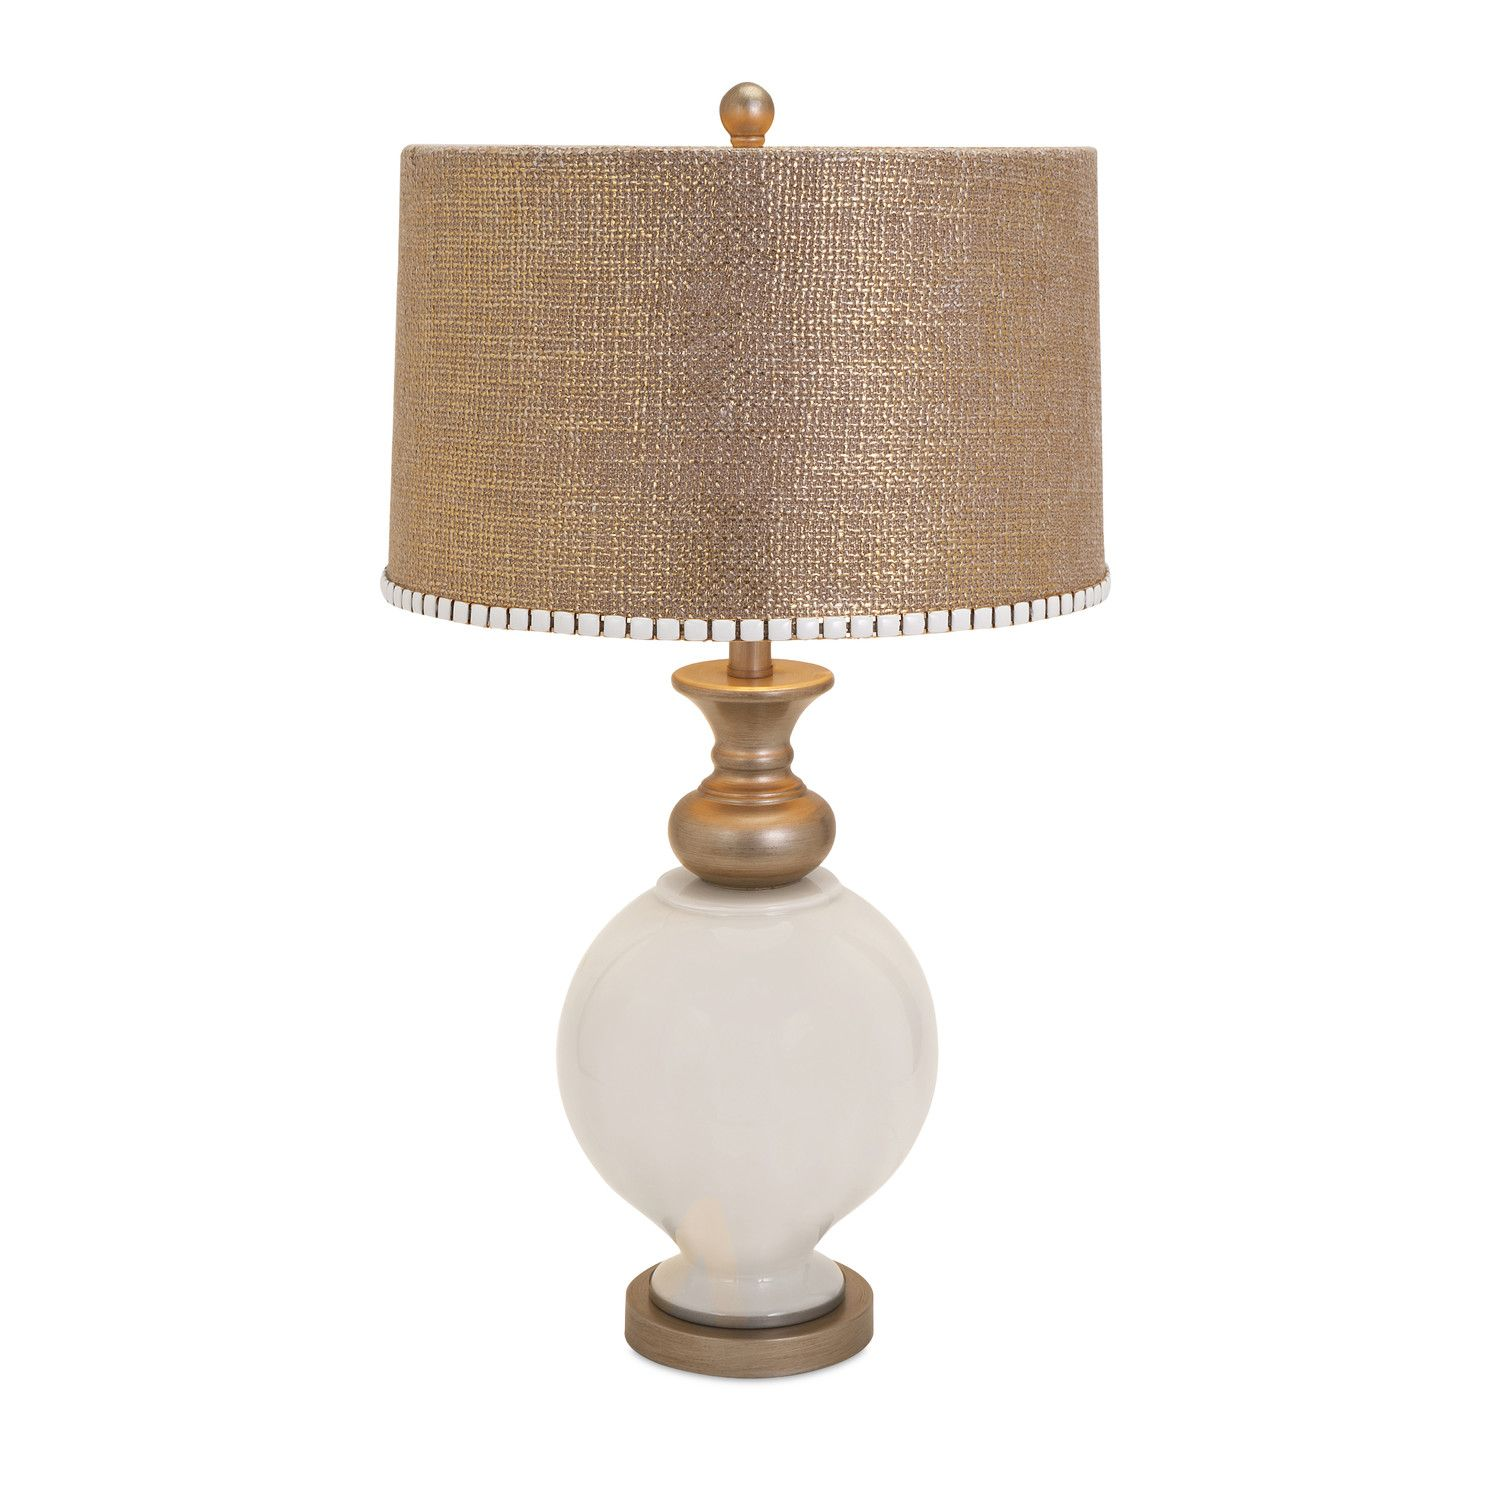 """IMAX Lily 20"""" H Table Lamp with Drum Shade - Really like the look of this table lamp - I STILL LIKE THE LOOK OF THIS TABLE LAMP ALOT"""